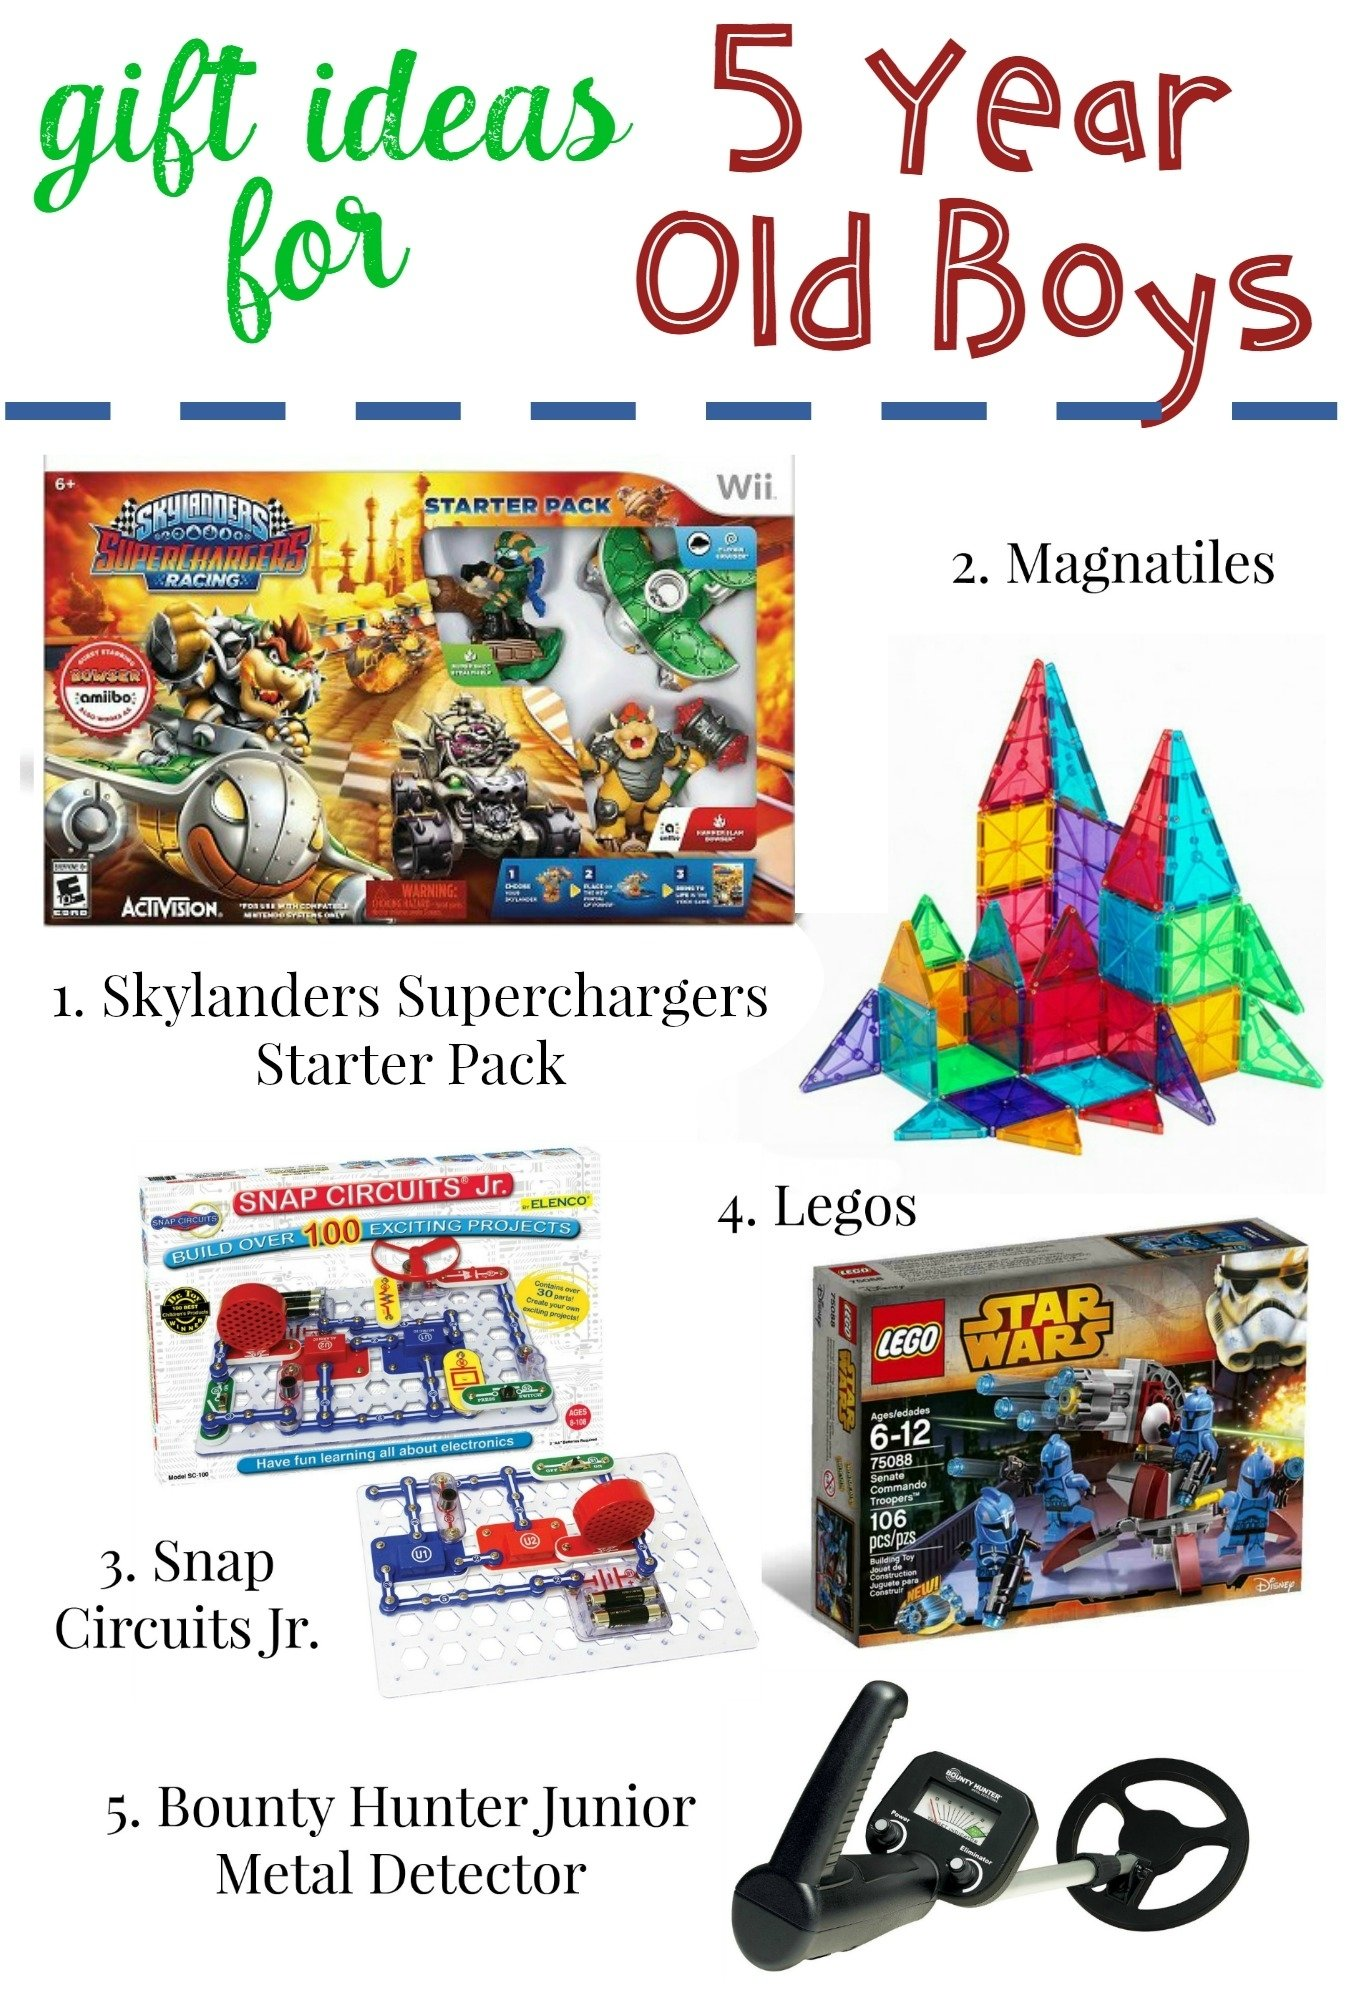 10 Unique Christmas Gift Ideas For 5 Year Old Boy gifts for 5 year old boys 8 2020